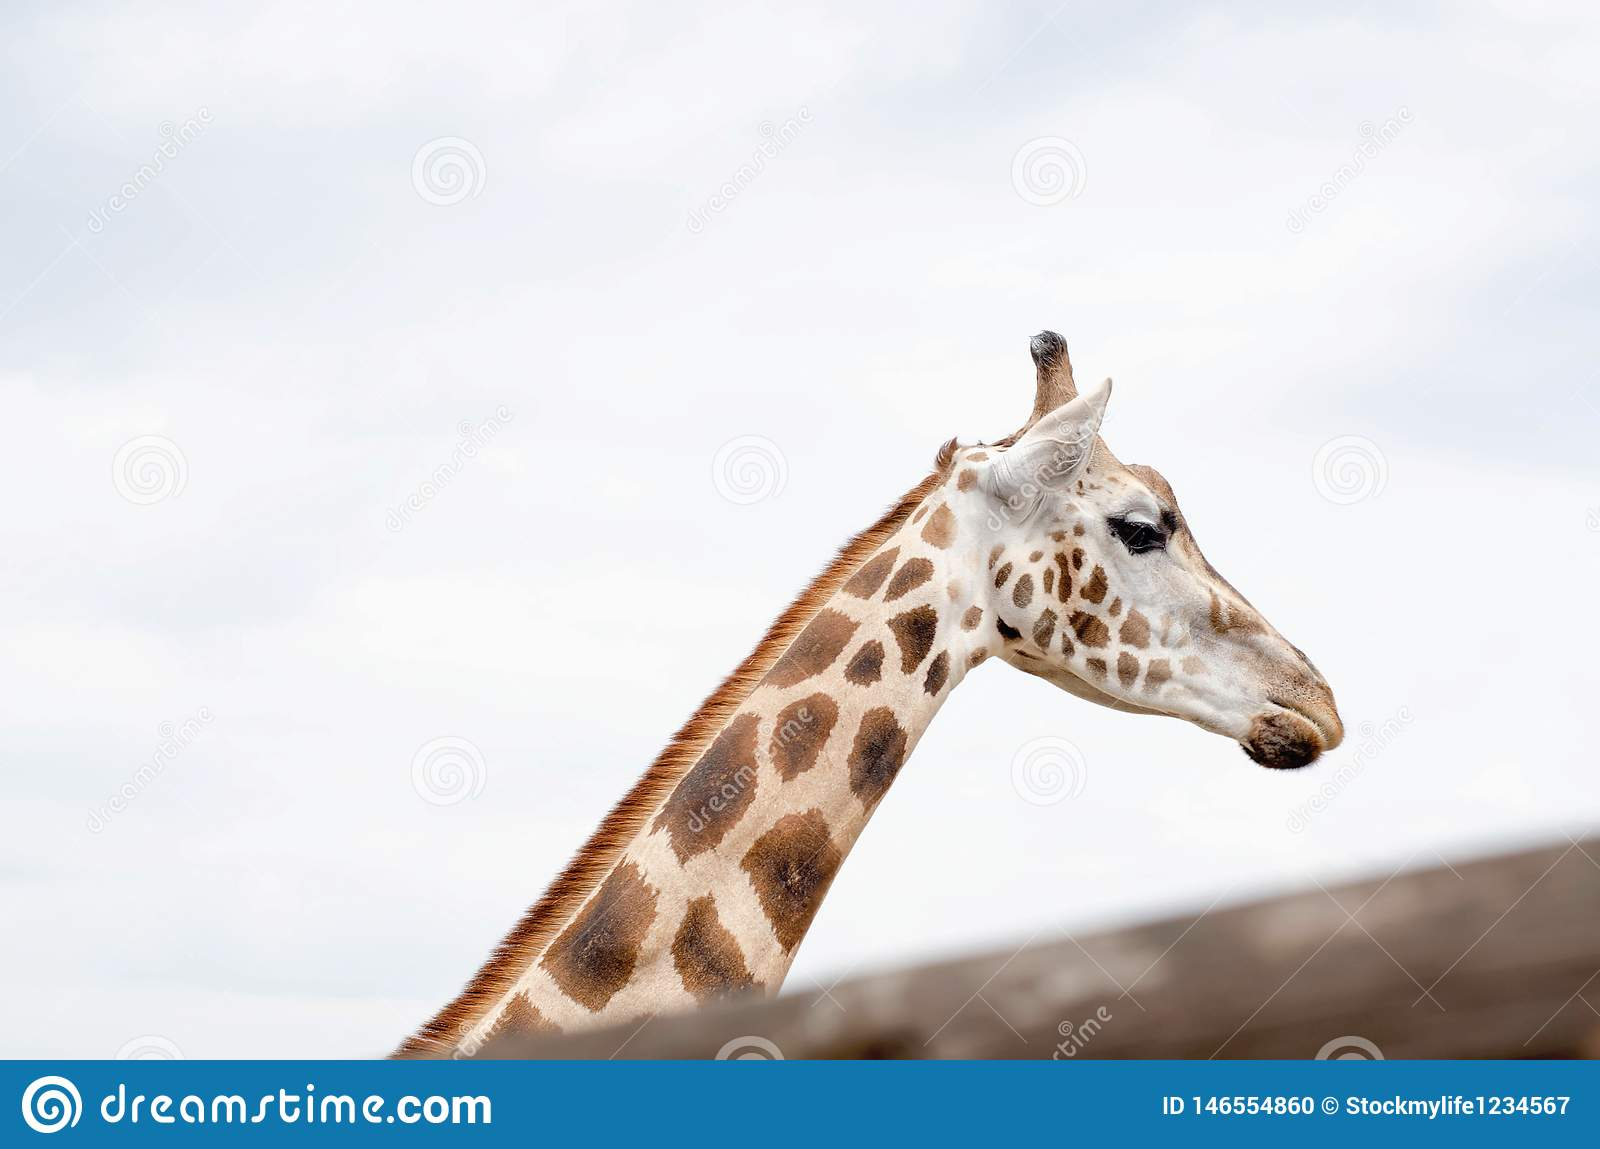 Photo Of A Live Giraffe Close-up Against The Sky Stock Photo